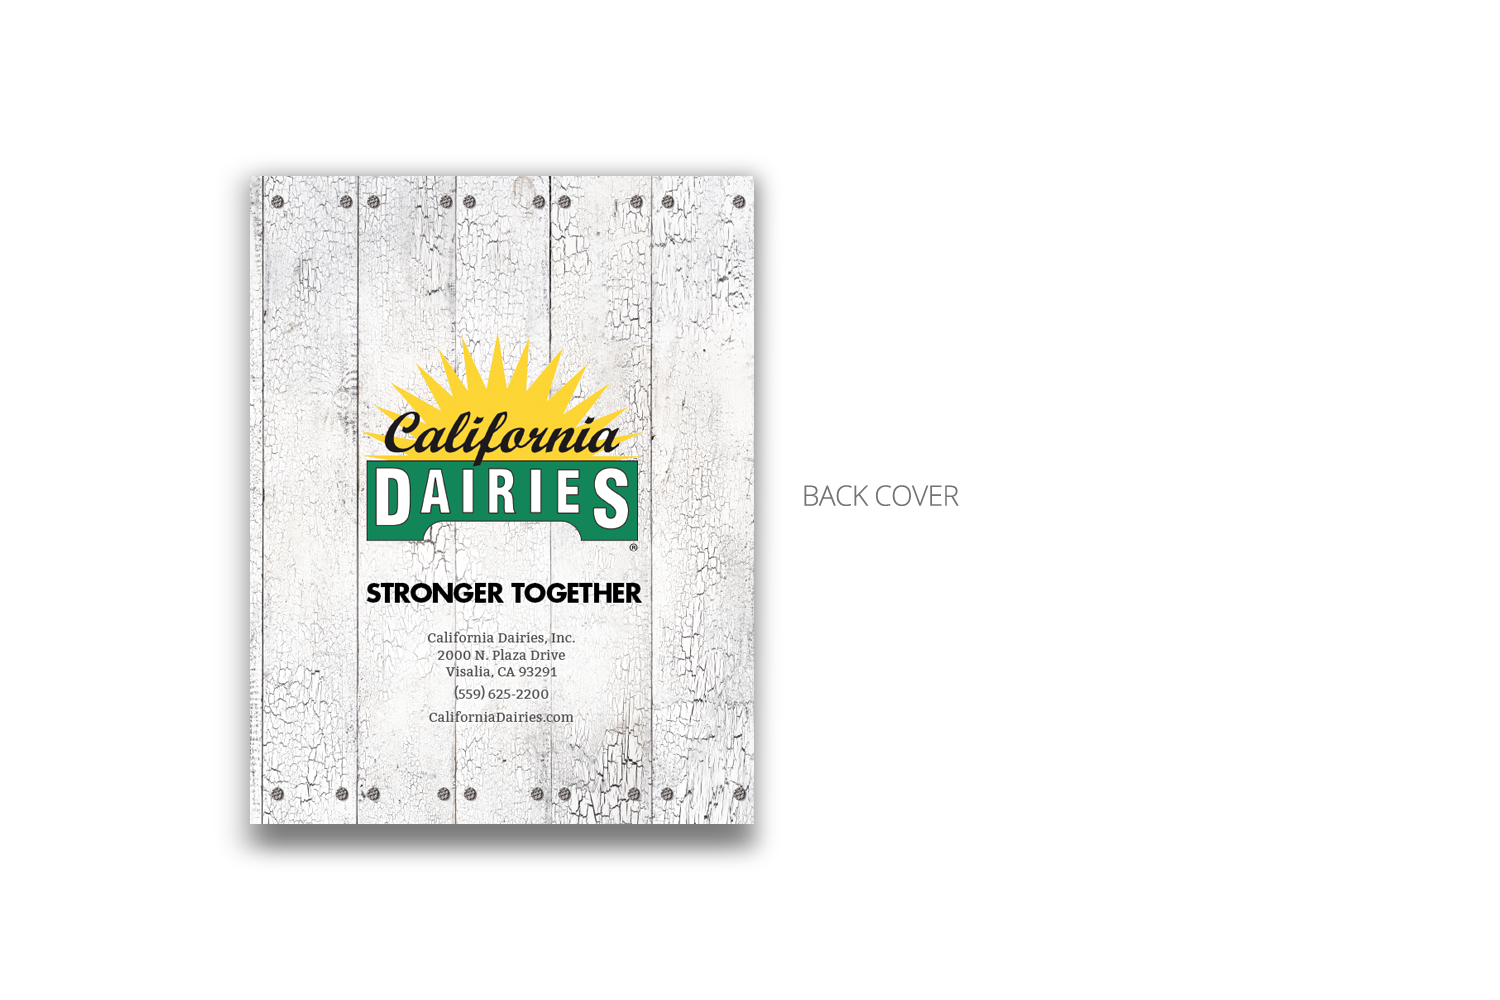 24-page corporate brochure for California Dairies - back cover